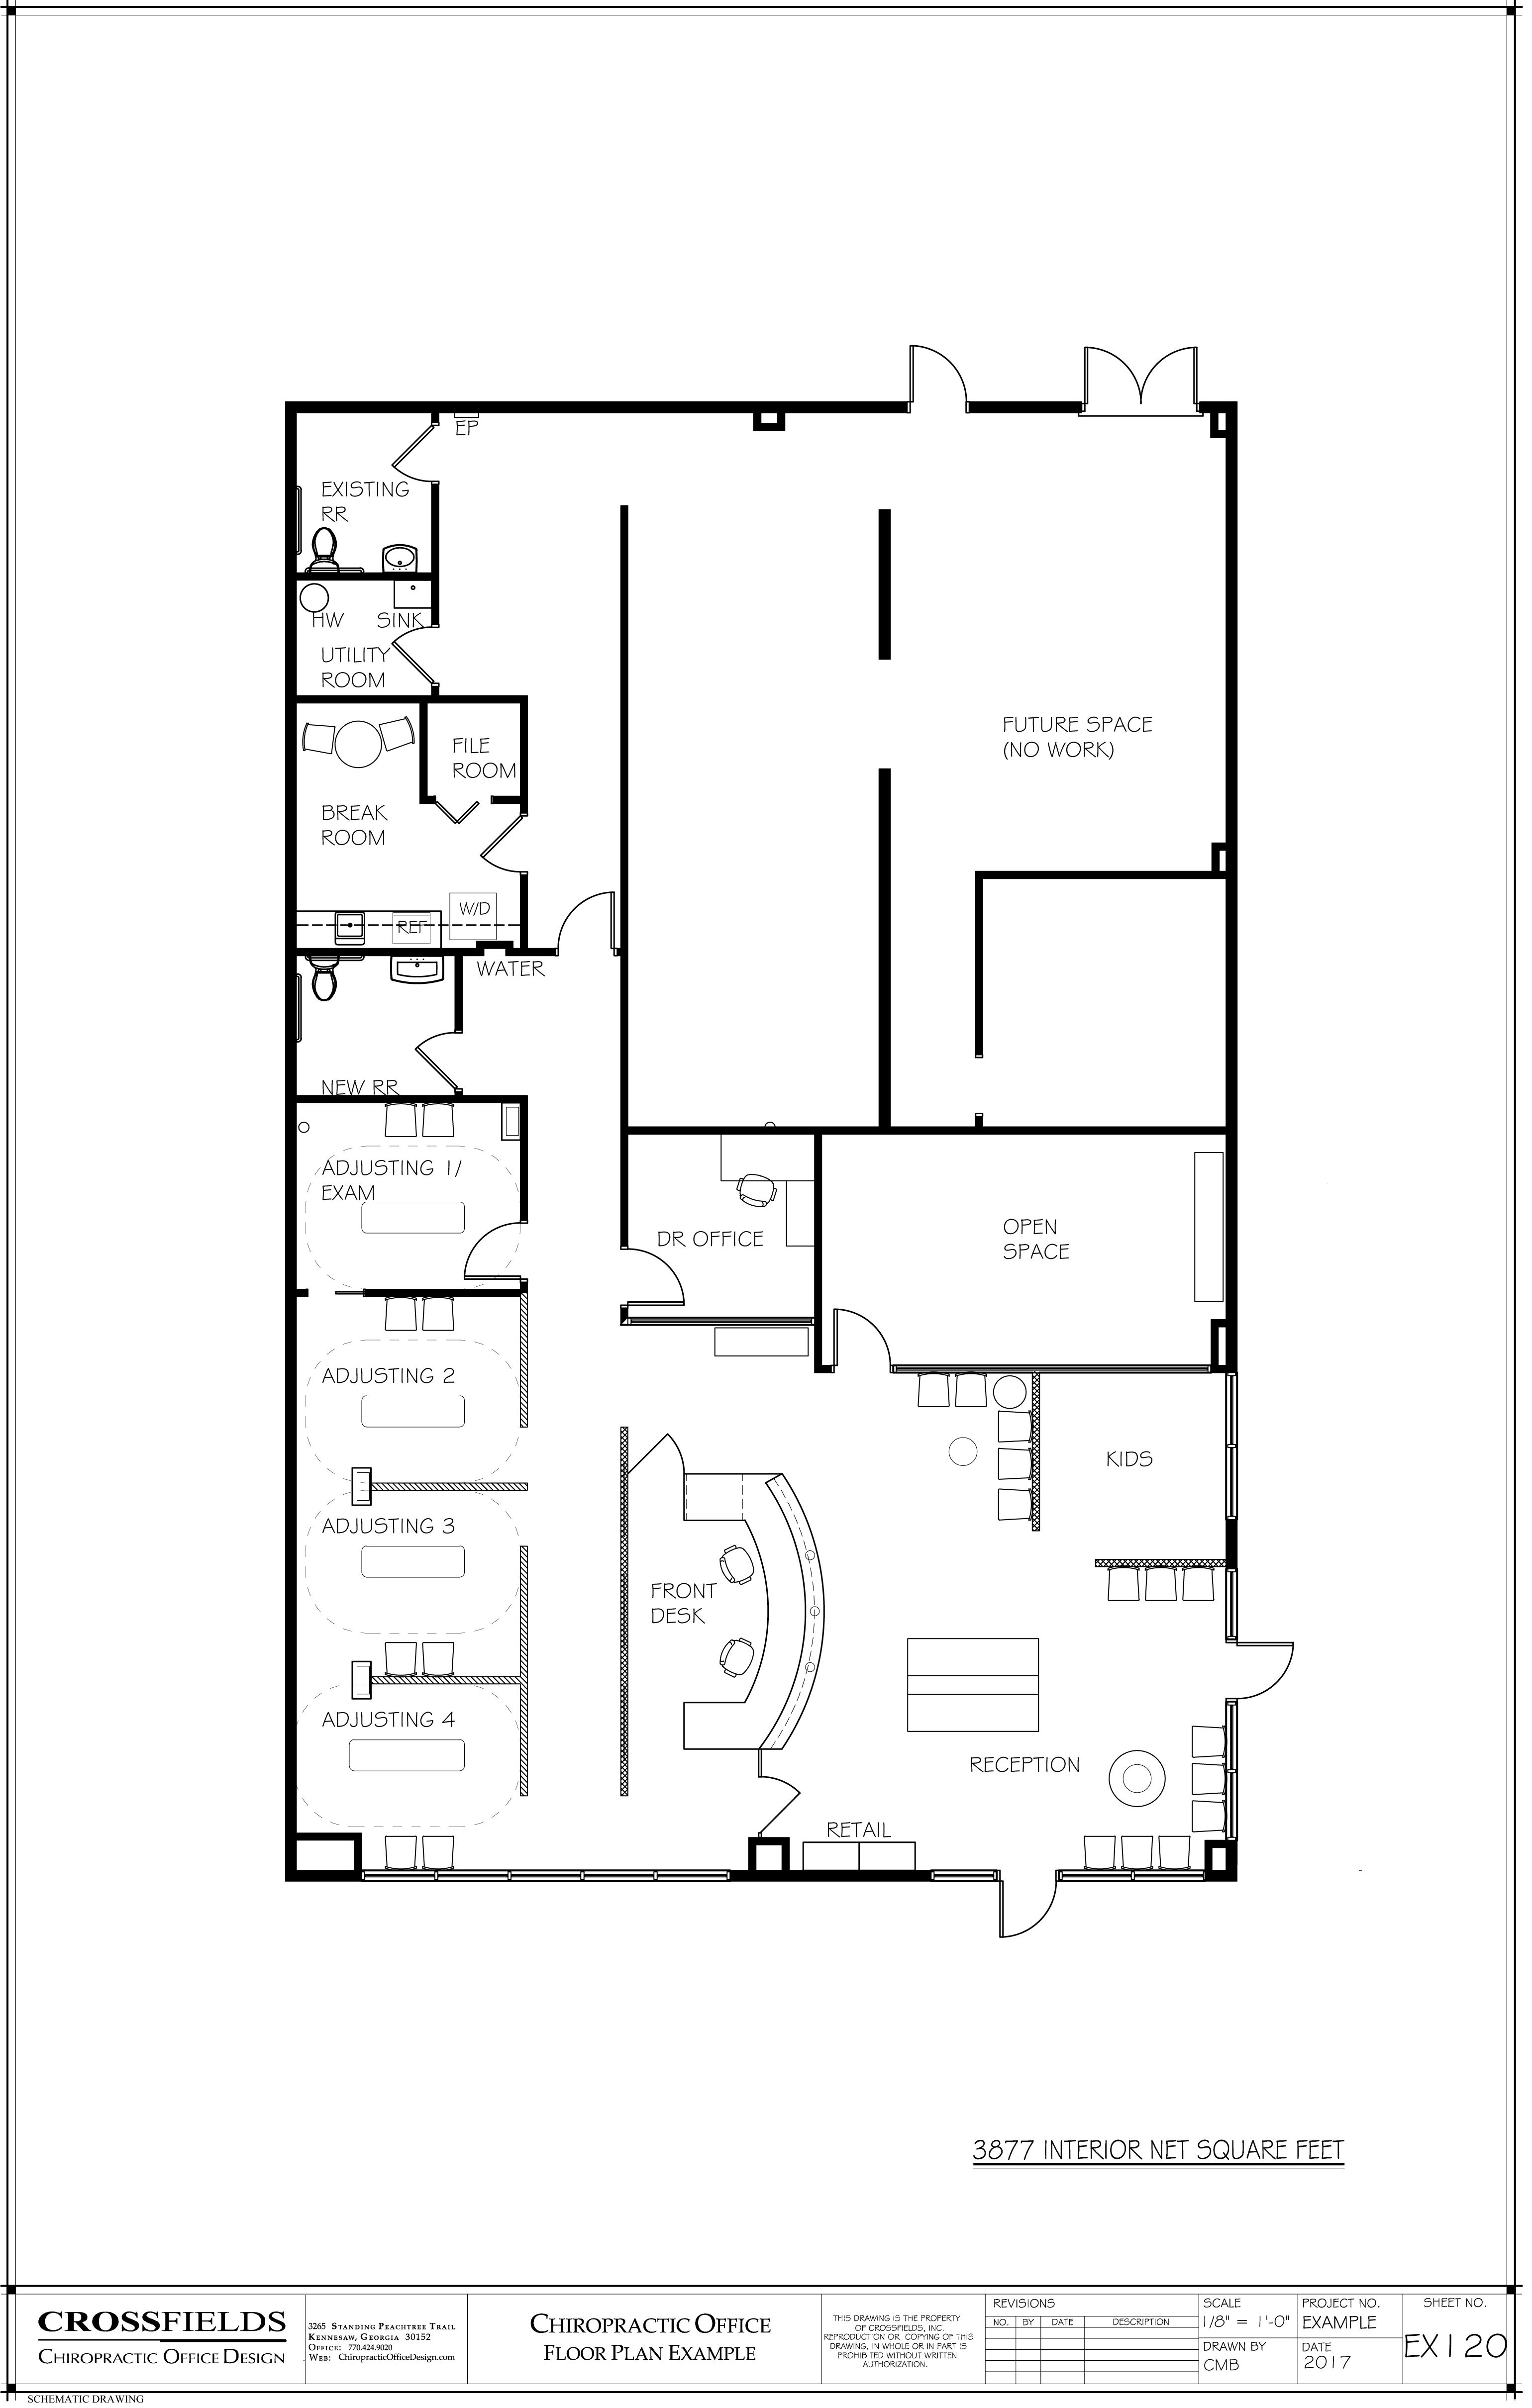 Chiropractic office floor plans chiropractic floor plans for Chiropractic office layout examples